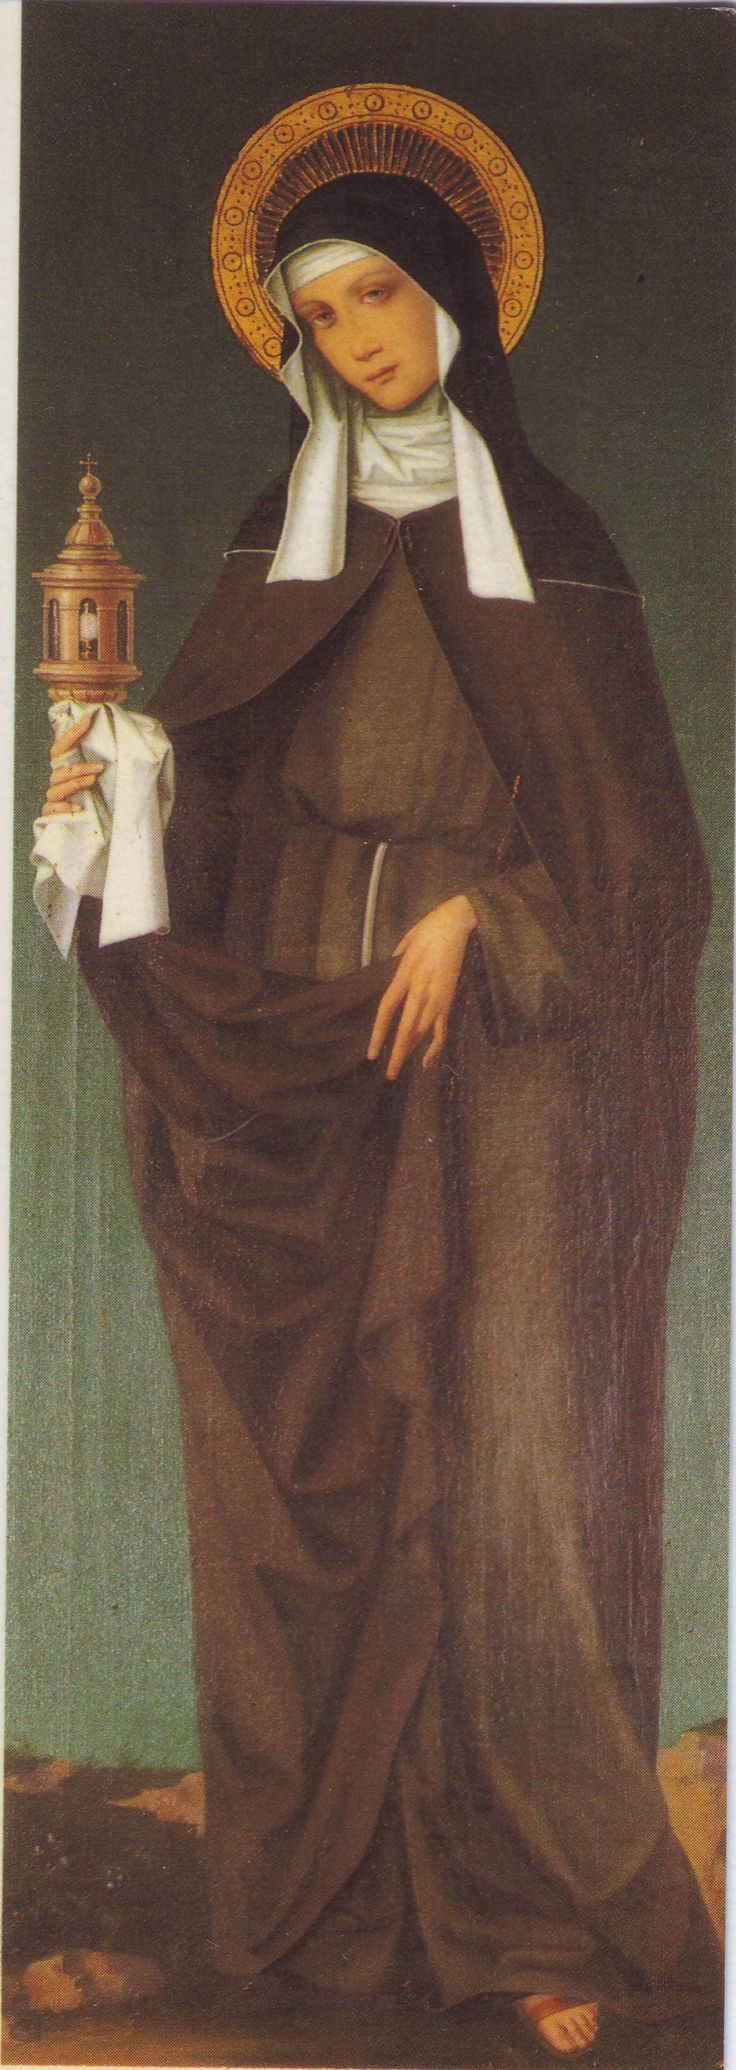 st clare of assisi life The order of poor clares was, and still is, a small band of woman who followed st  clare as she followed st francis devoted to the simple life of manual labor.